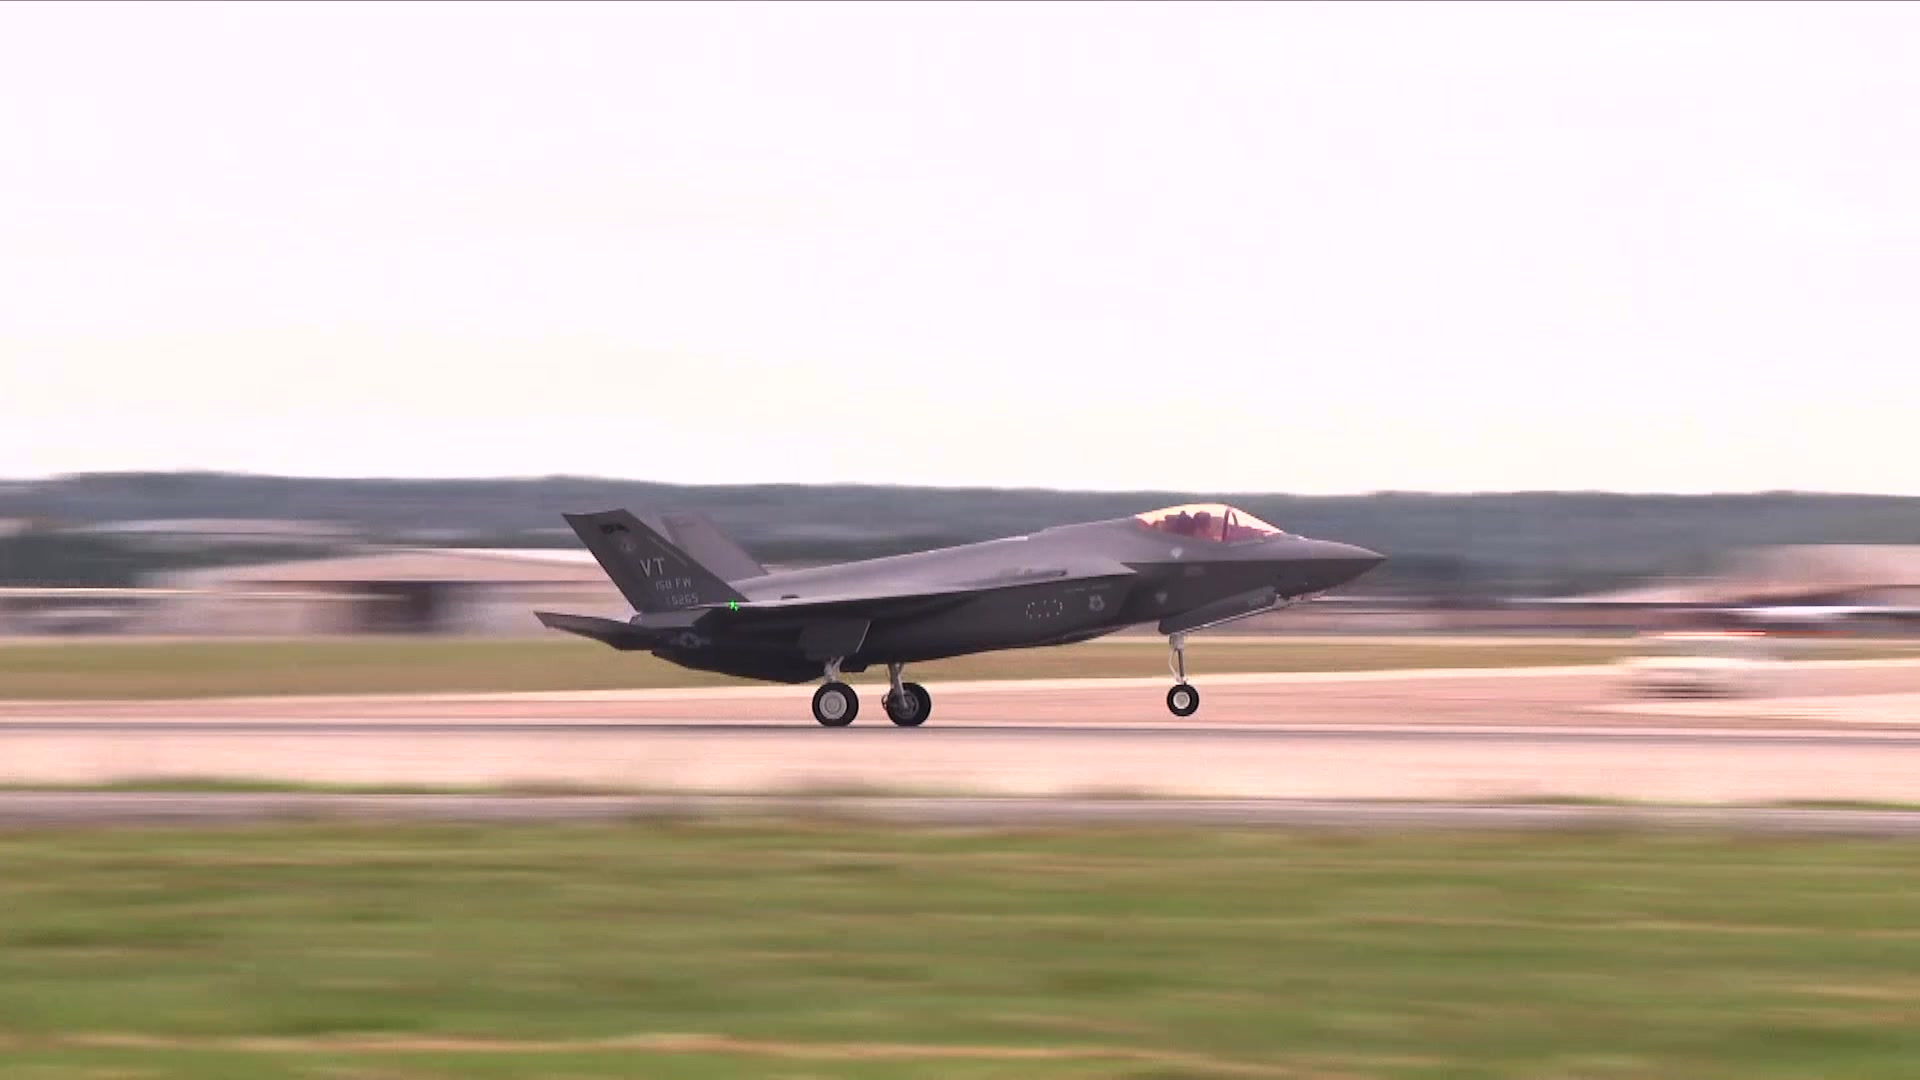 Come along for the ride with Lt. Colonels Nathan Graber and Anthony Marek as they fly home from Texas to Vermont with the first two F-35s in the Air National Guard.